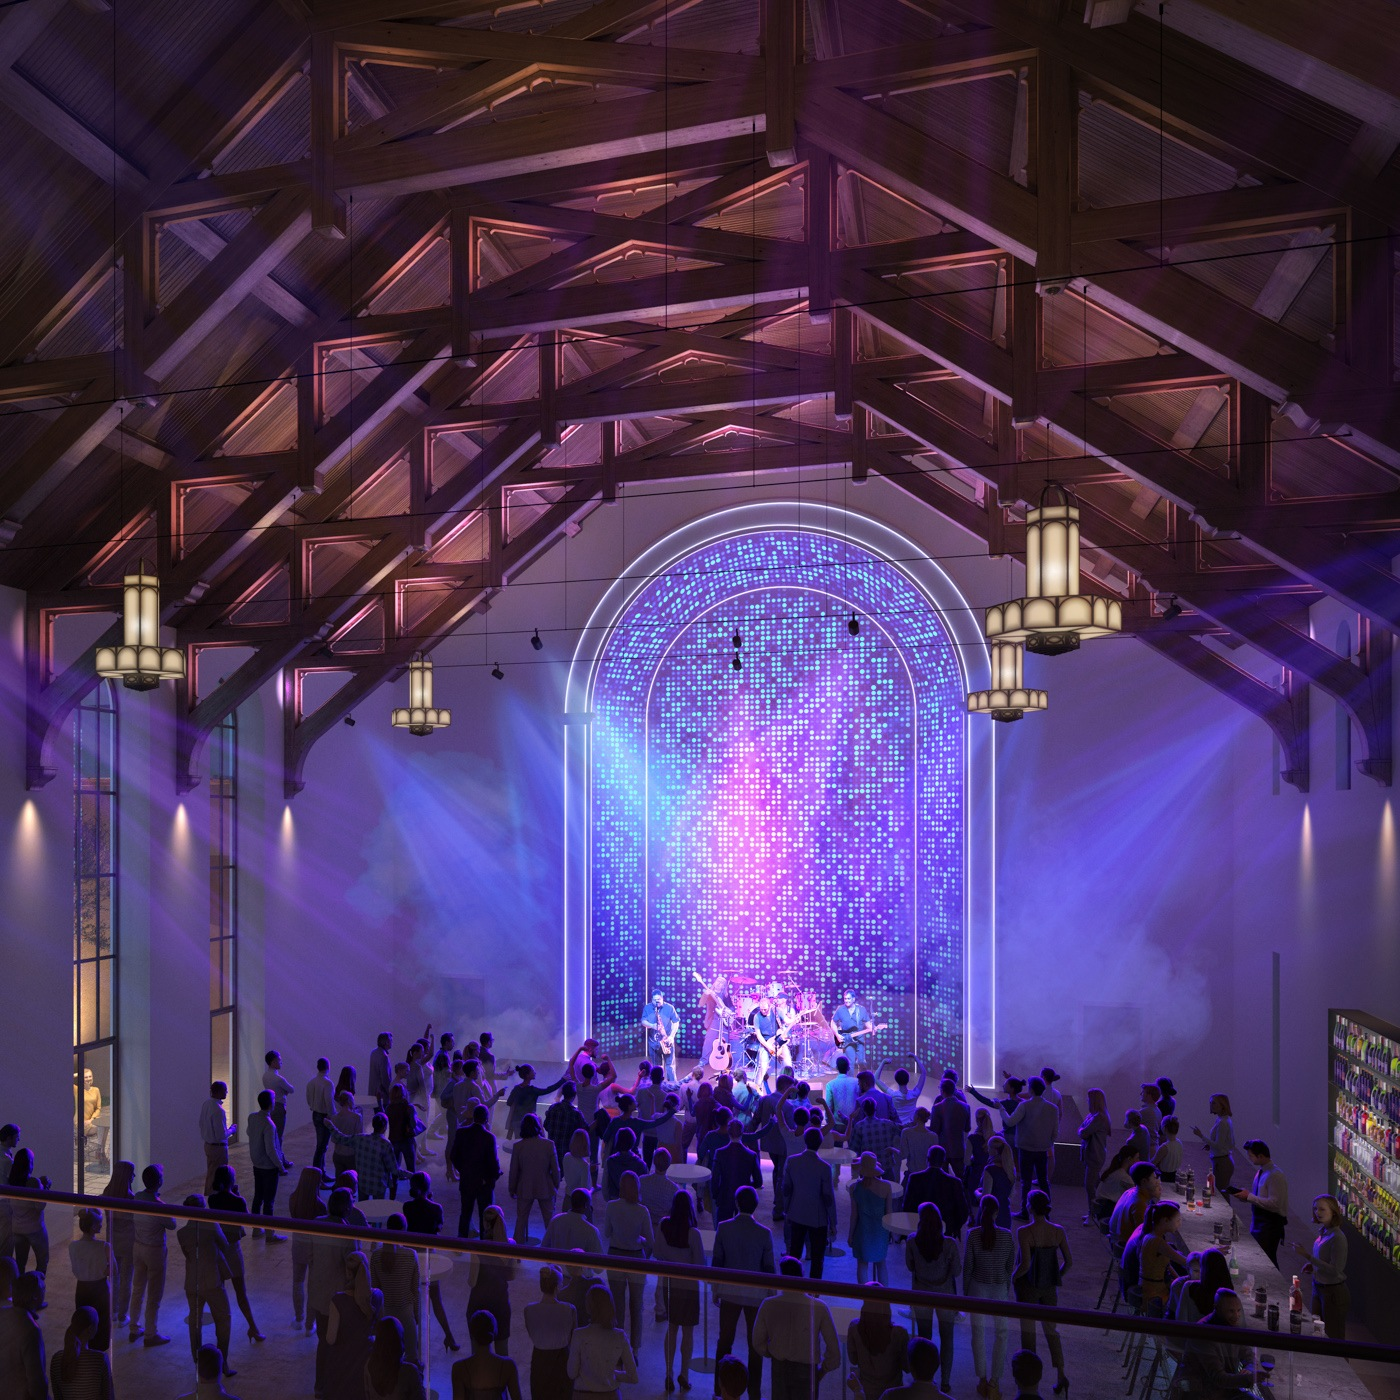 Interior view of a church that has been turned into a music and event venue